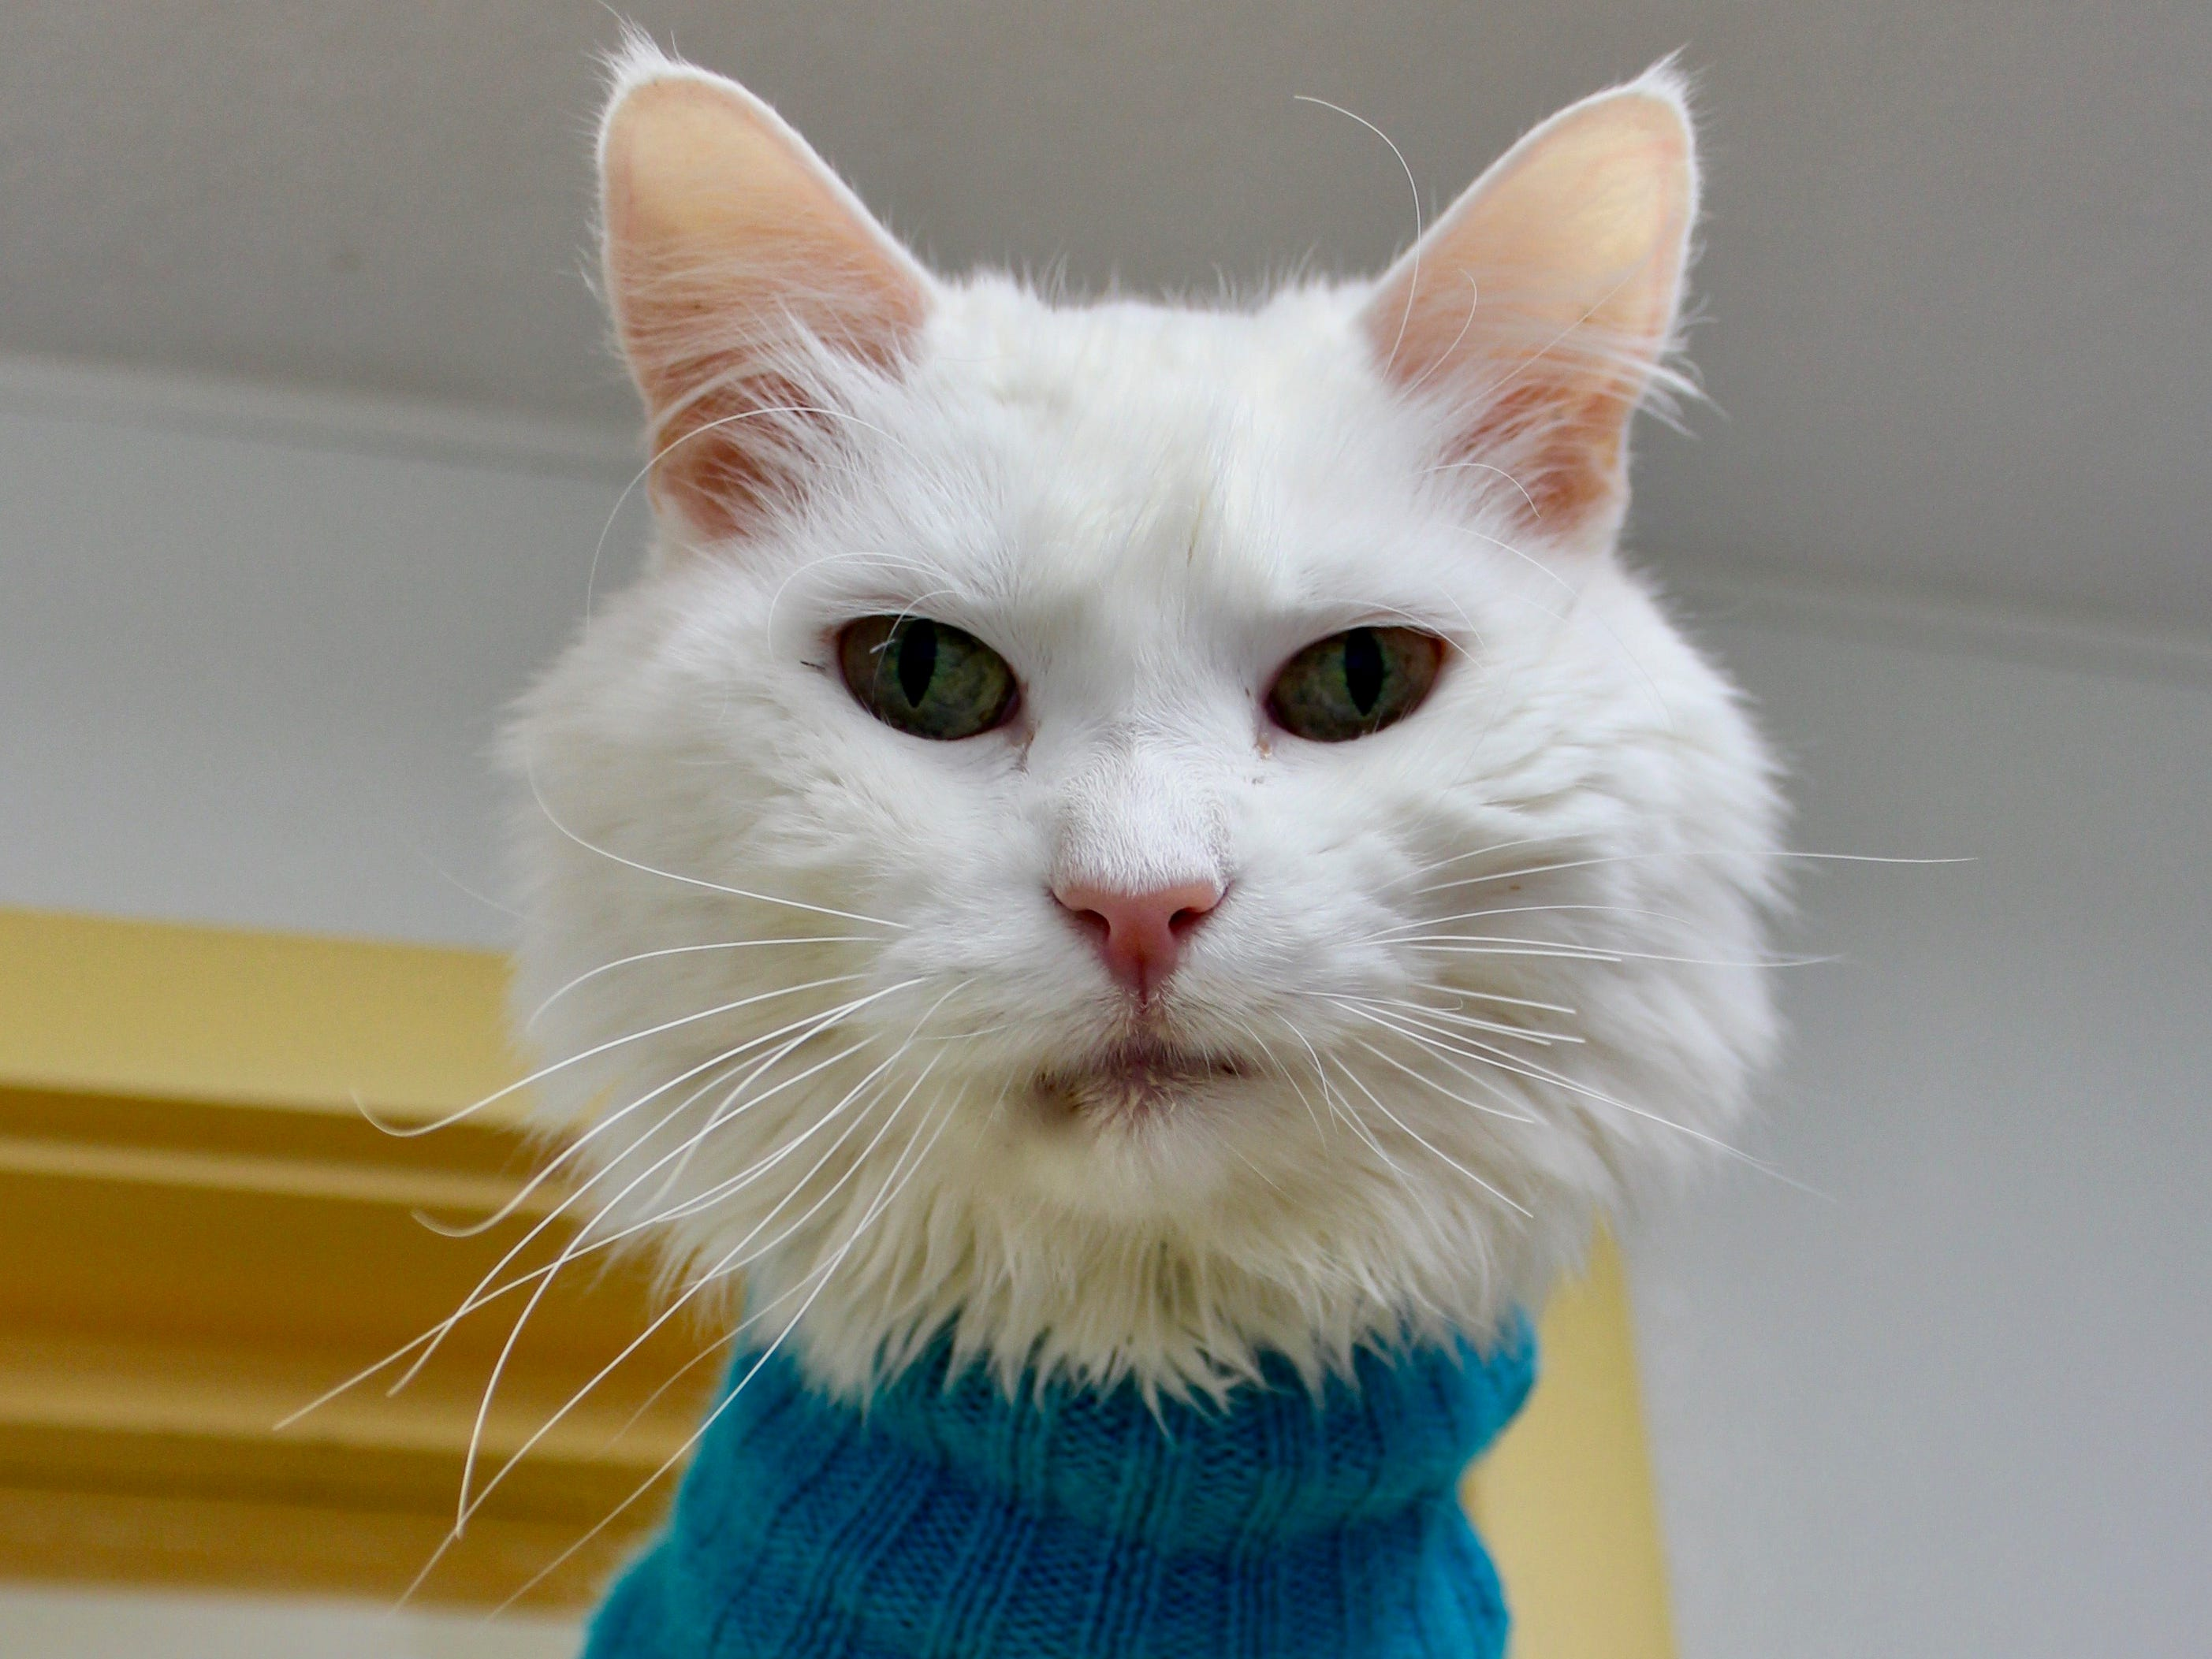 Snowball is a 12-year-old white cat. He will let his visitors pet him, brush him and pick him up for cuddles. That kind of openness is a little rare, especially for a former street cat. Snowball has a haircut due to the many mats that caked his coat when he came in. Now he's all cleaned up and ready to spend his forever with you. To find out more about him, call Willamette Humane Society at 503-585-5900 or visit www.whs4pets.org.